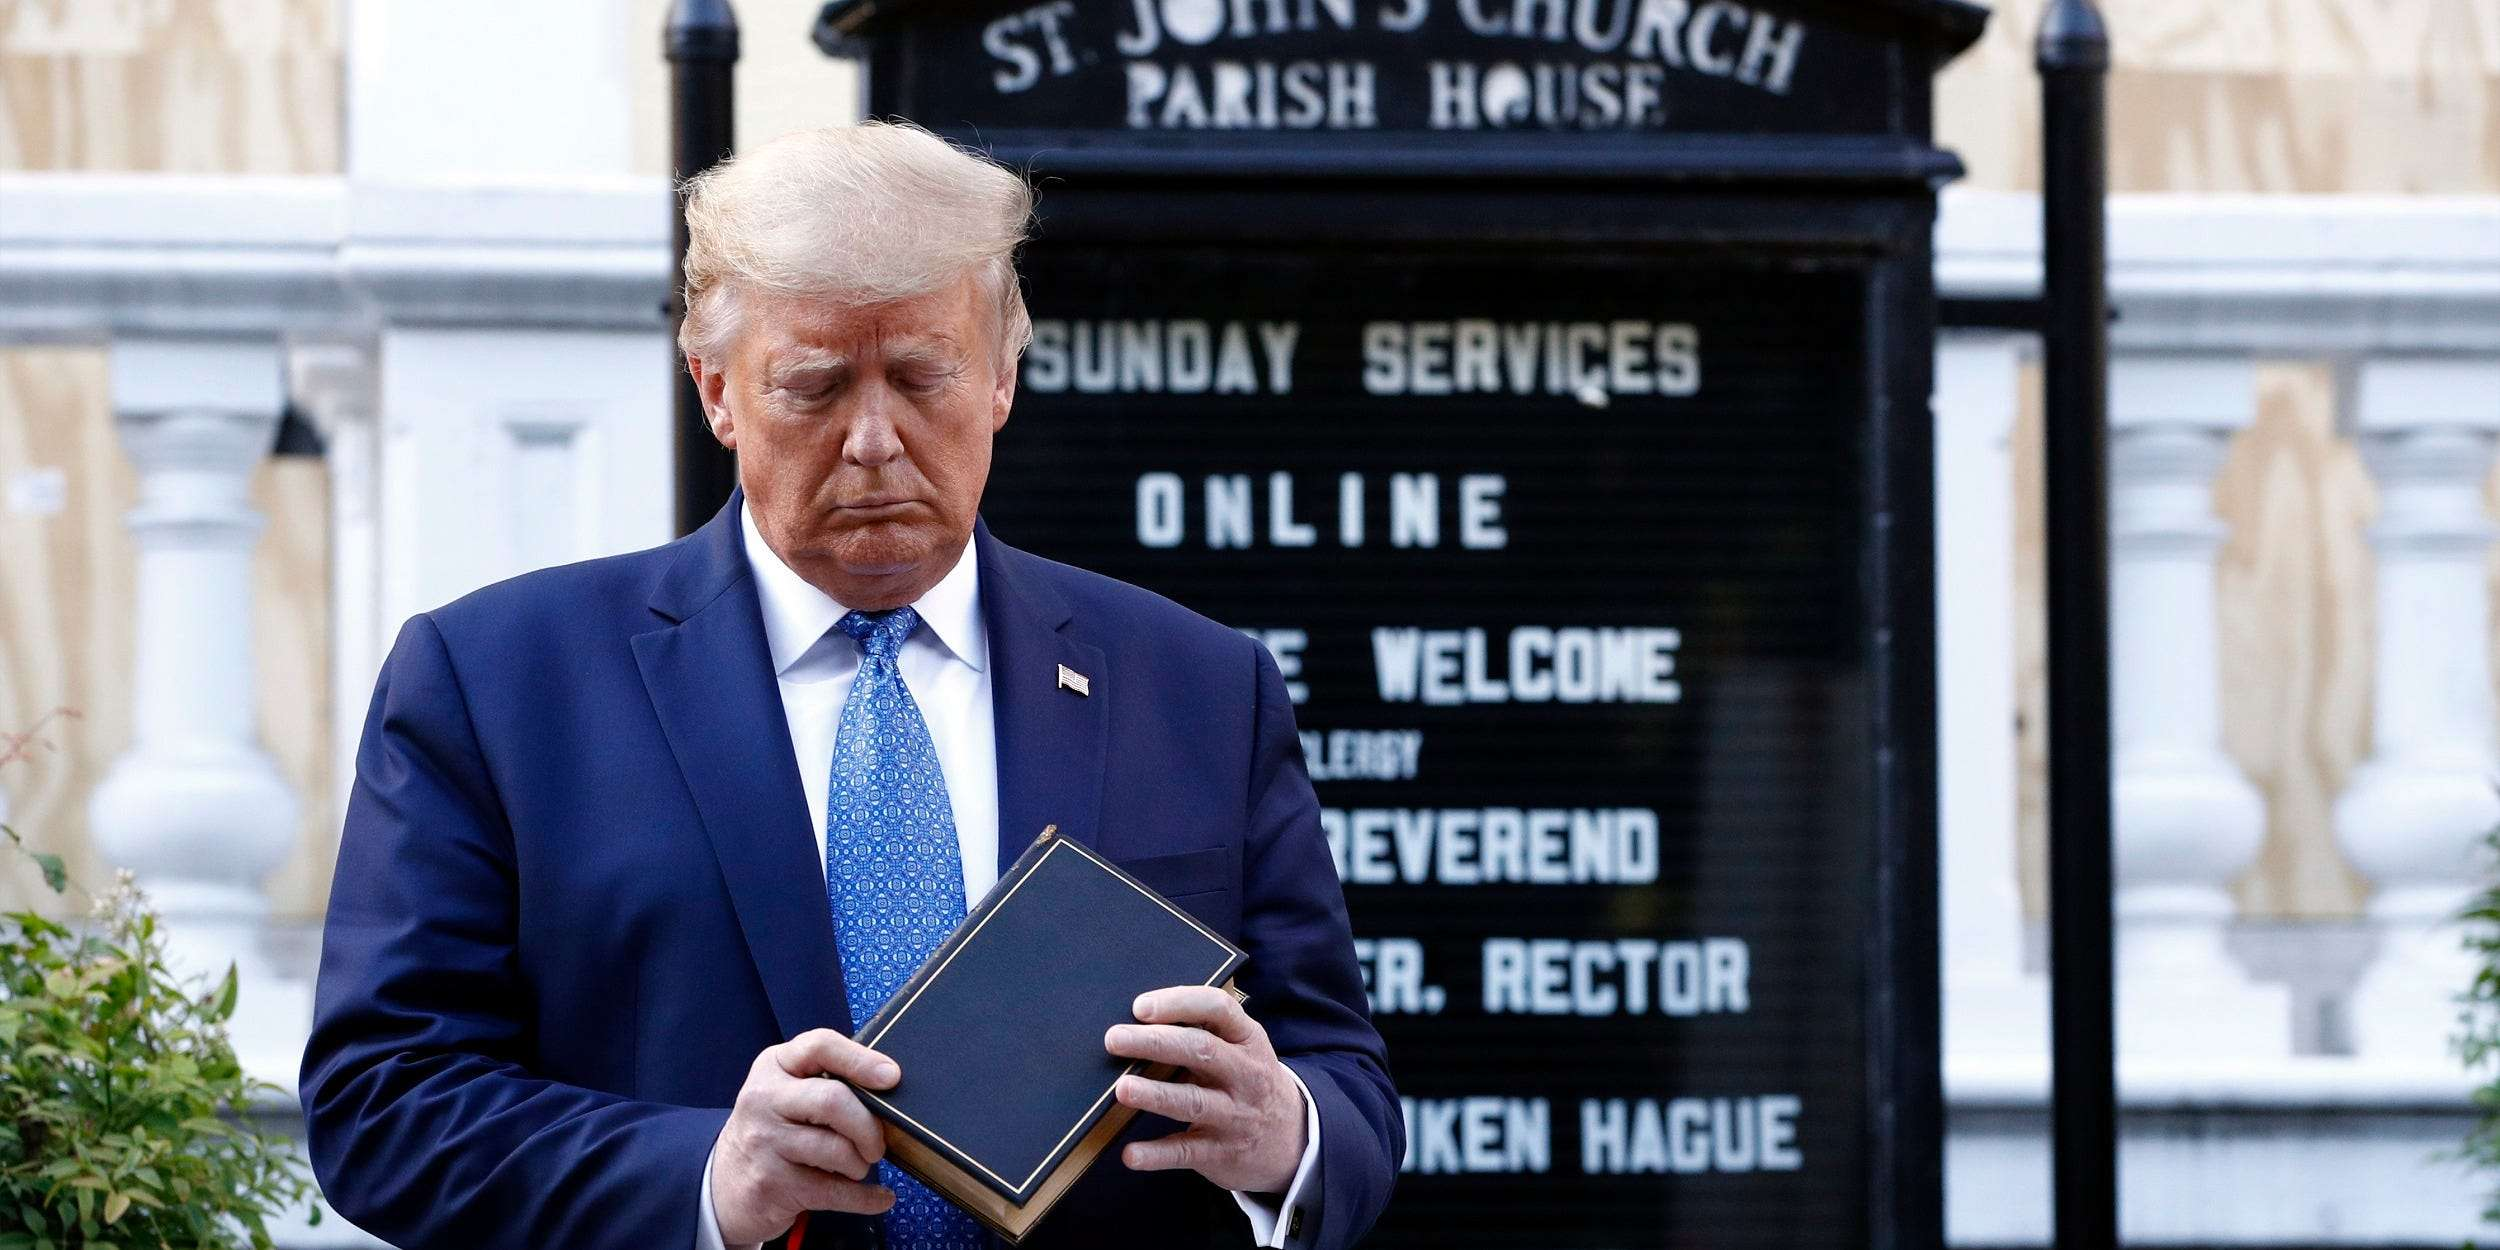 DC Episcopal bishop 'outraged' after Trump hosted photo-op church ...